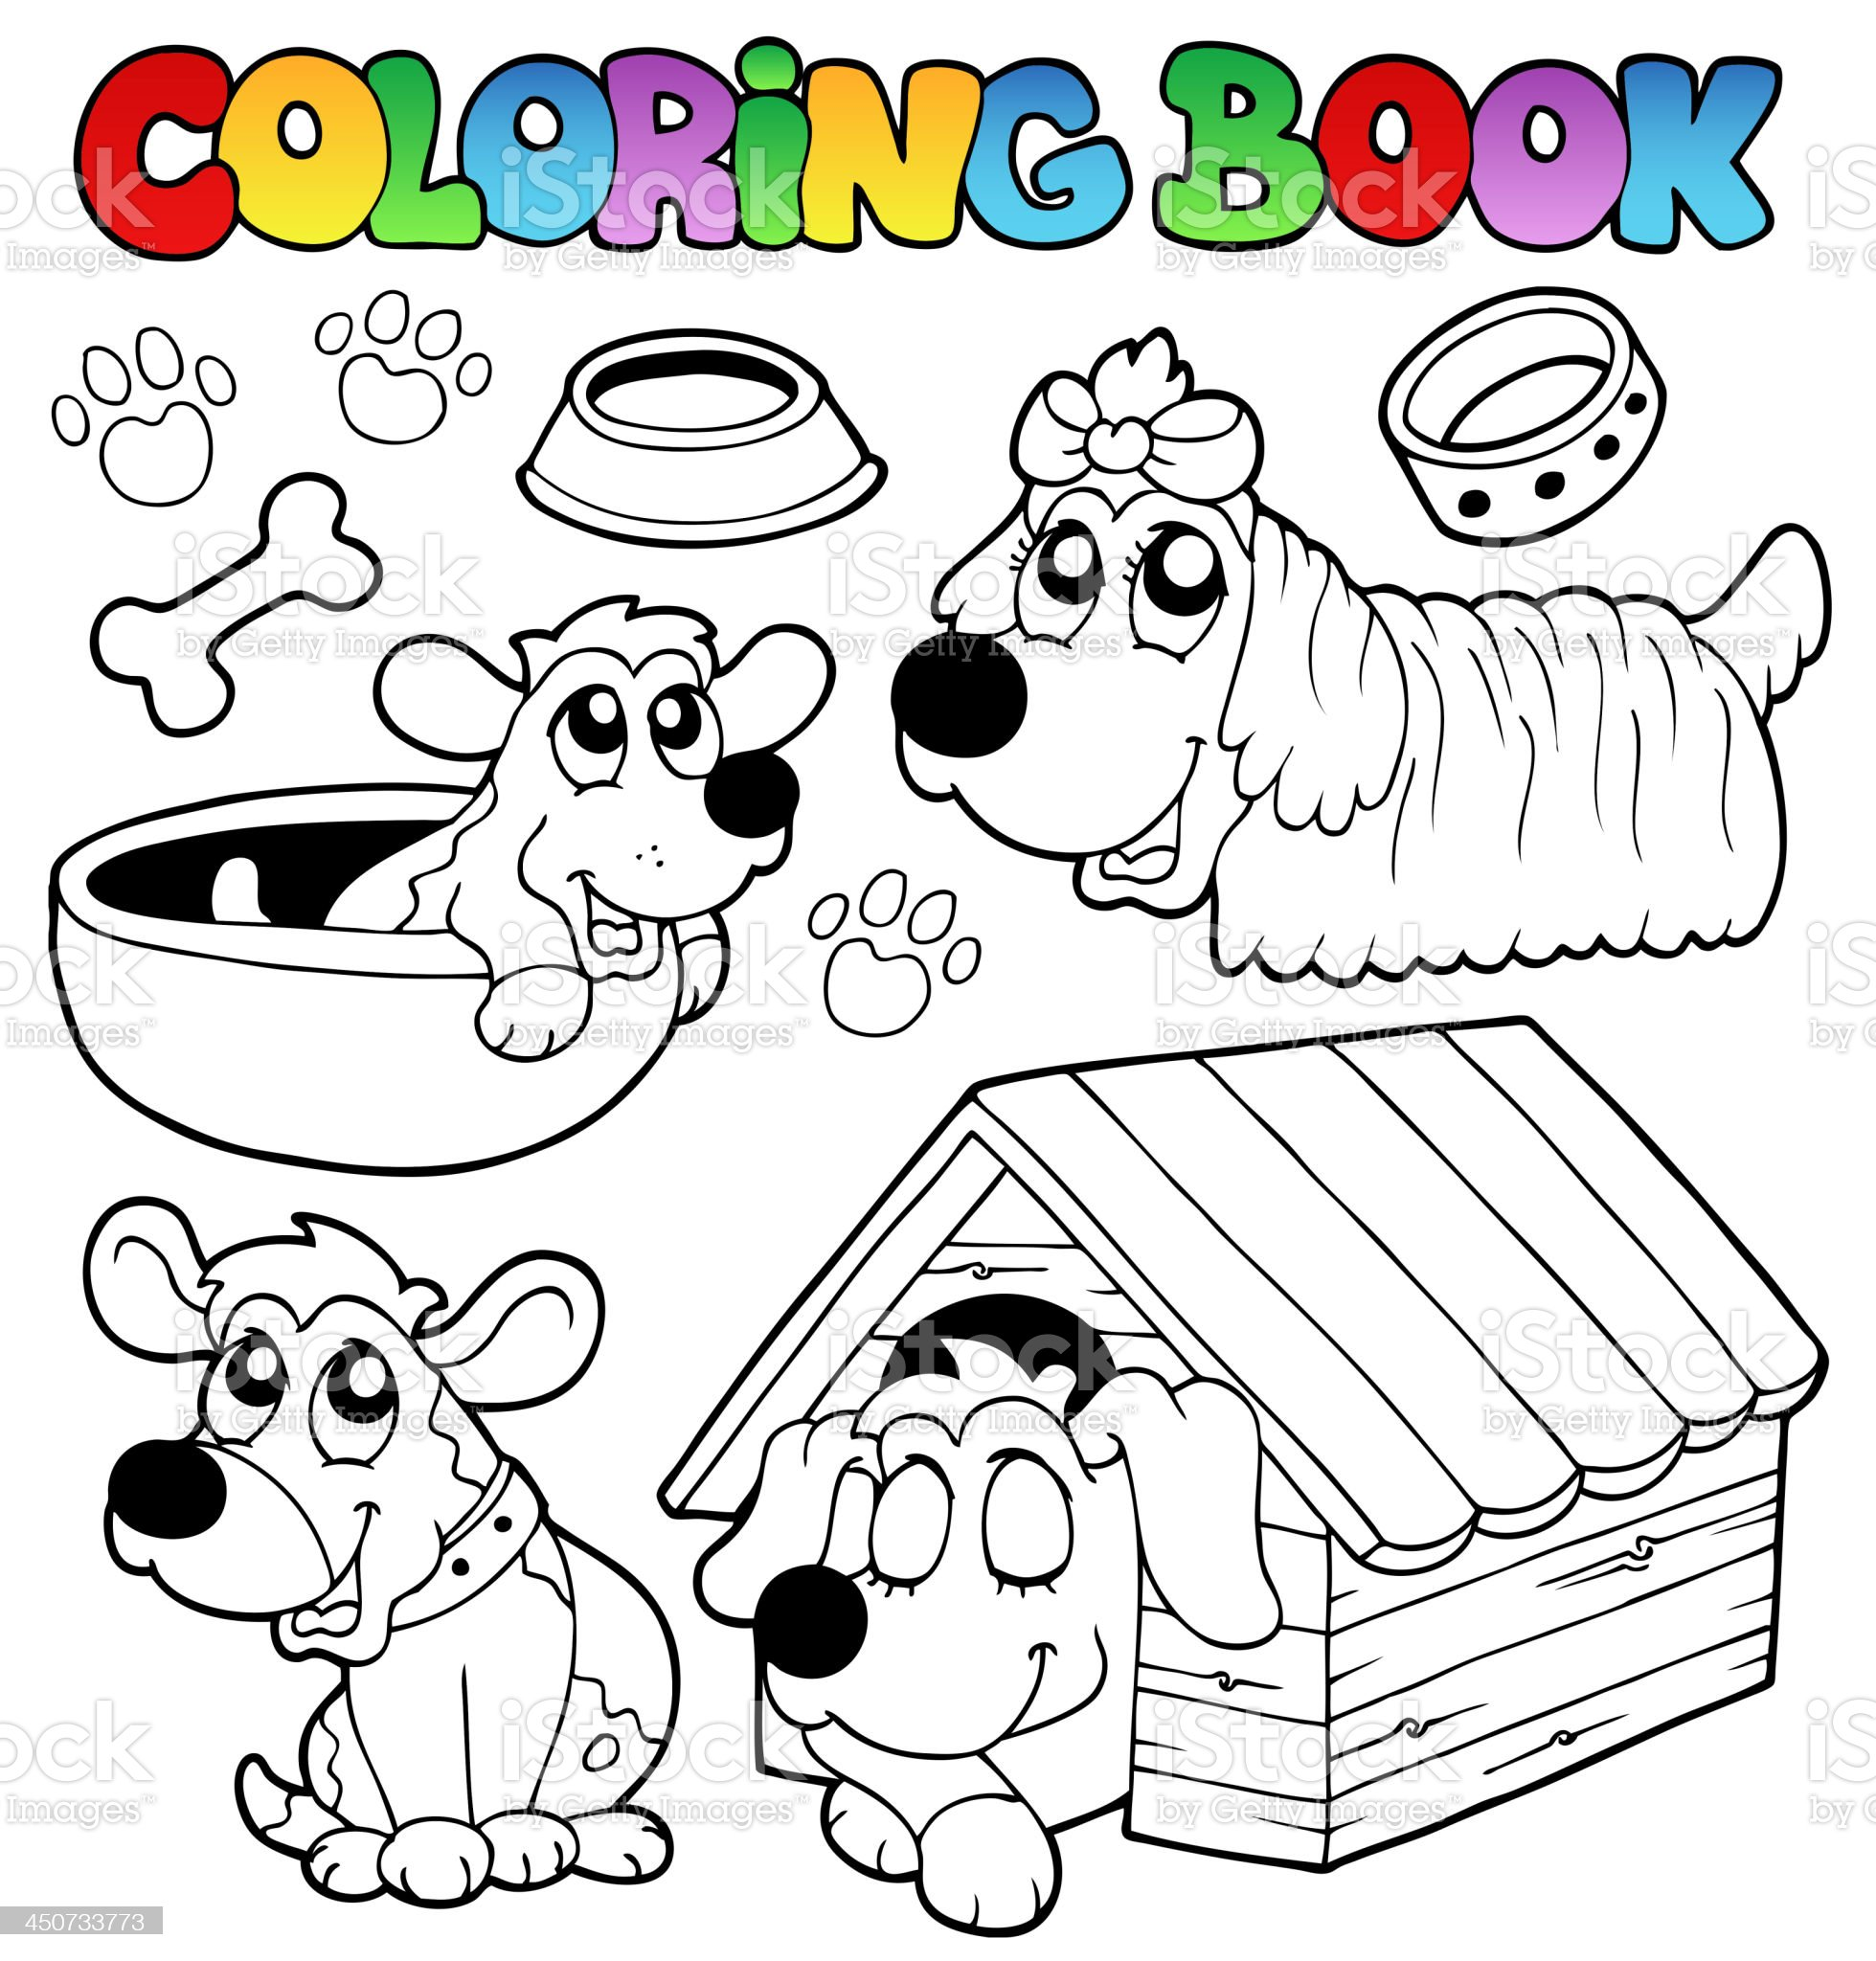 Coloring book with cute dogs royalty-free stock vector art